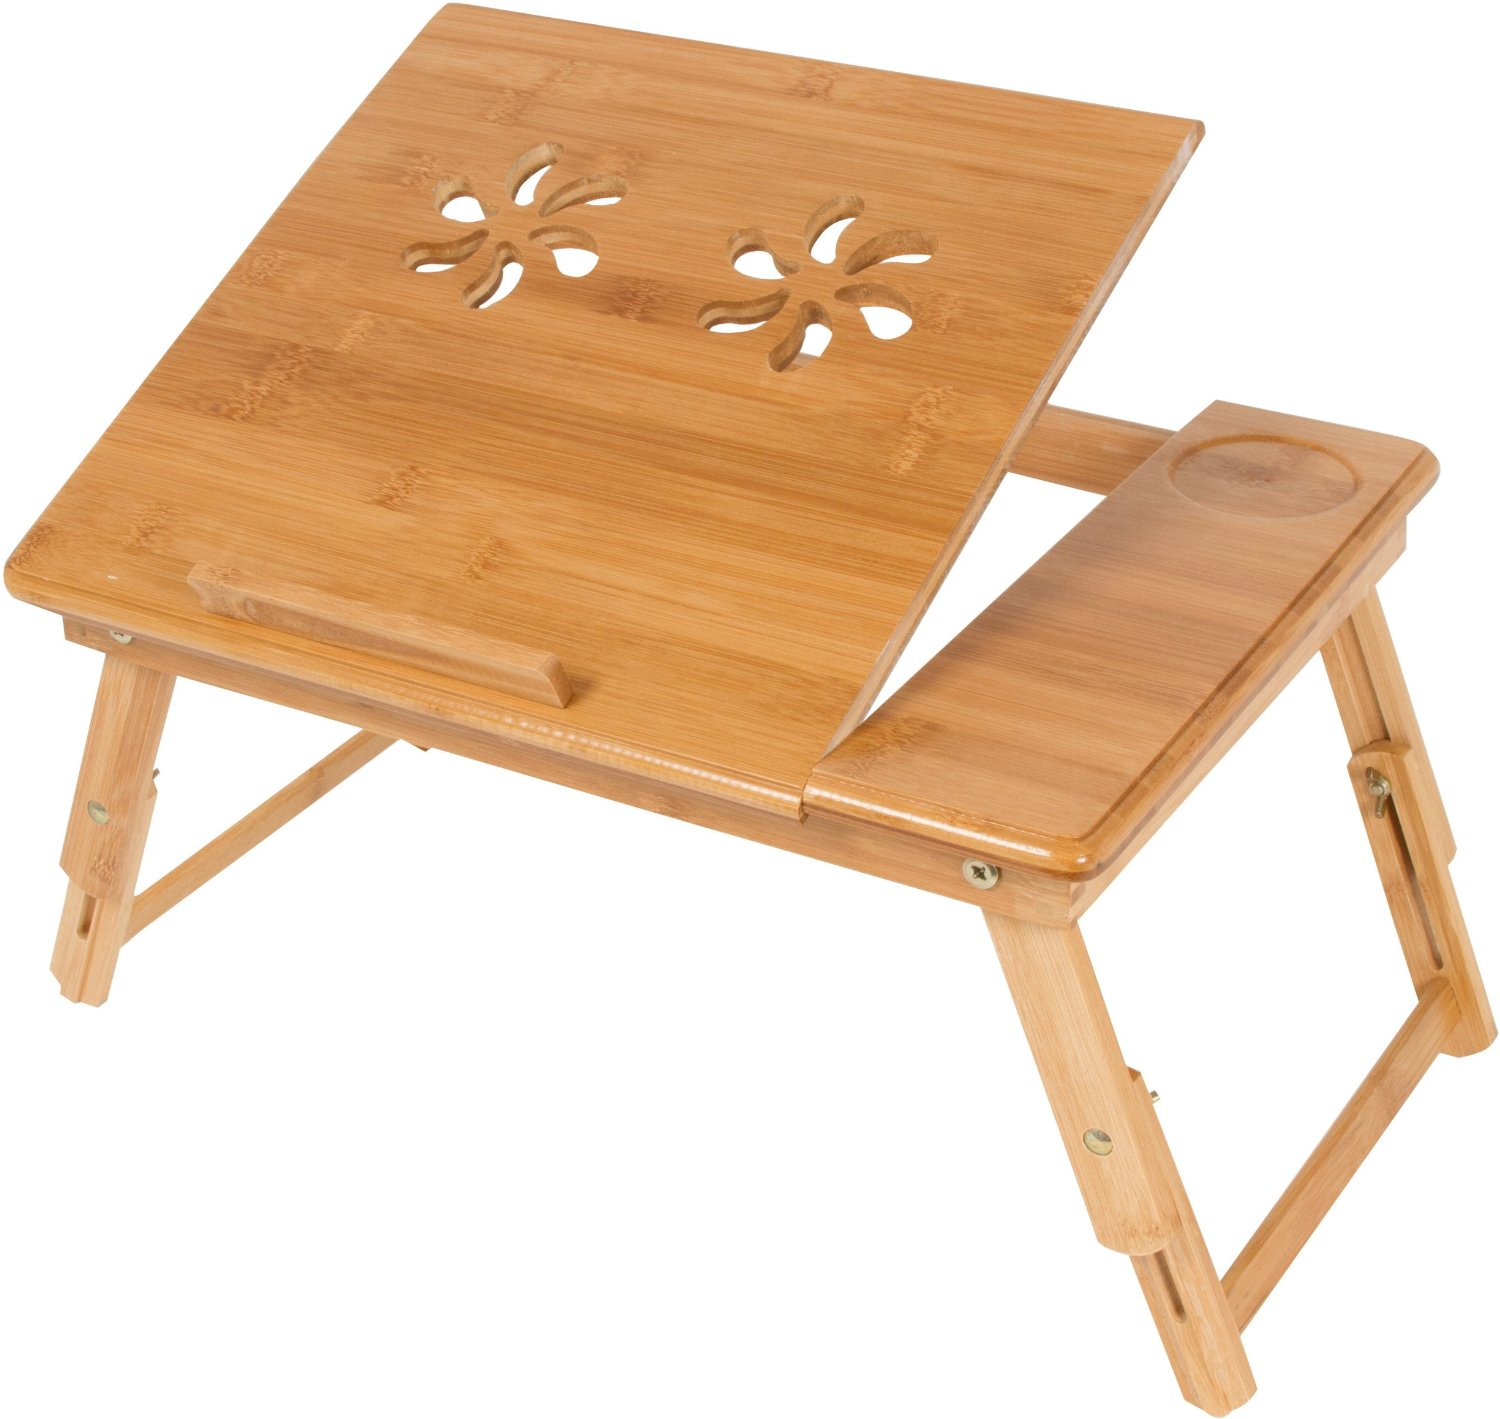 Rolling bed tray table - Trademark Innovations Folding Bamboo Serving Bed Tray